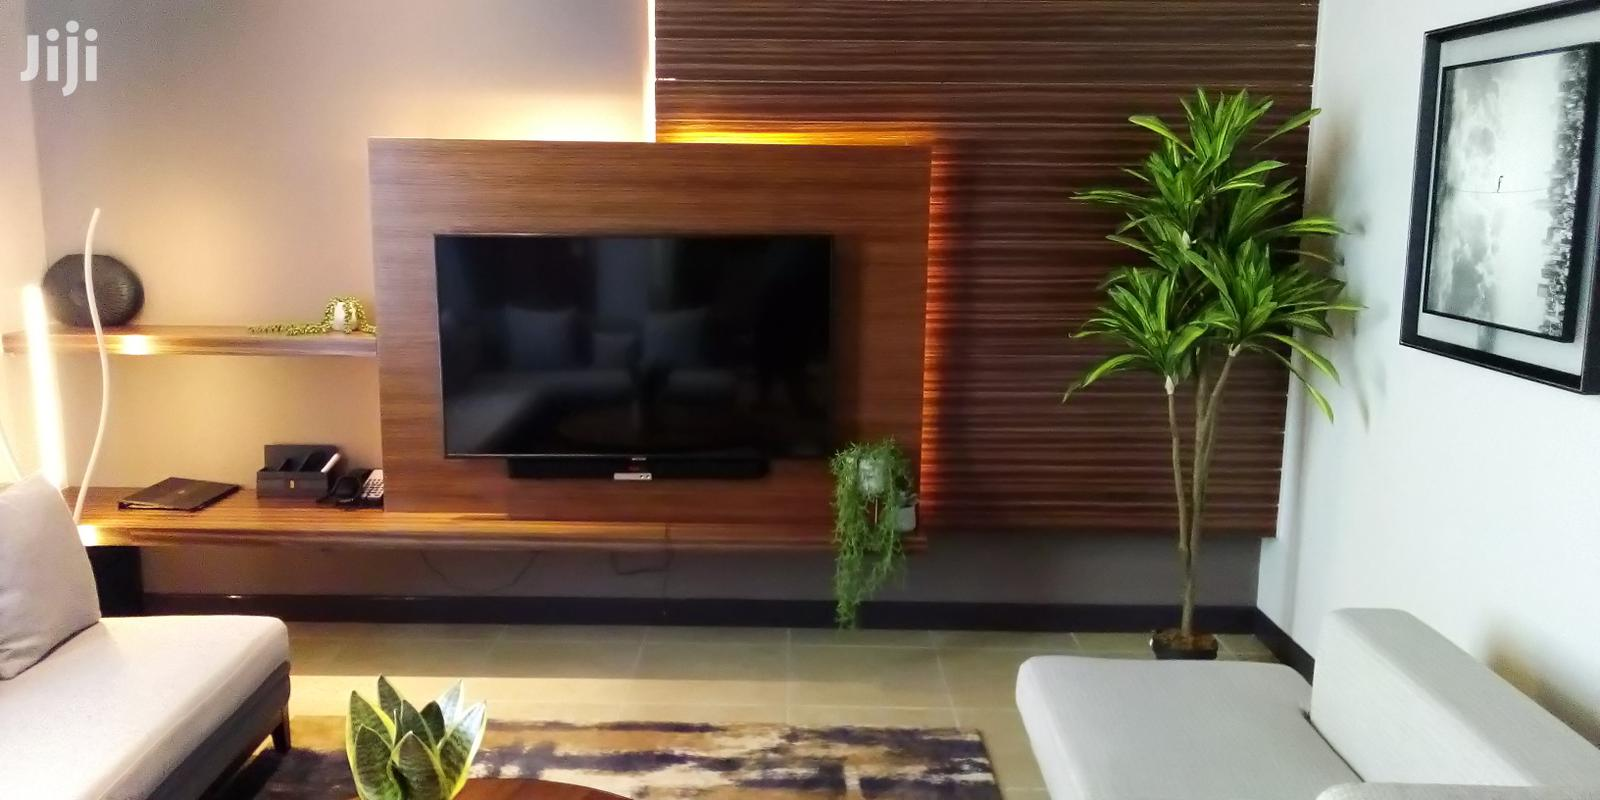 Specious 2 Bedrooms Fully Furnished For Rent At Kijitonyama